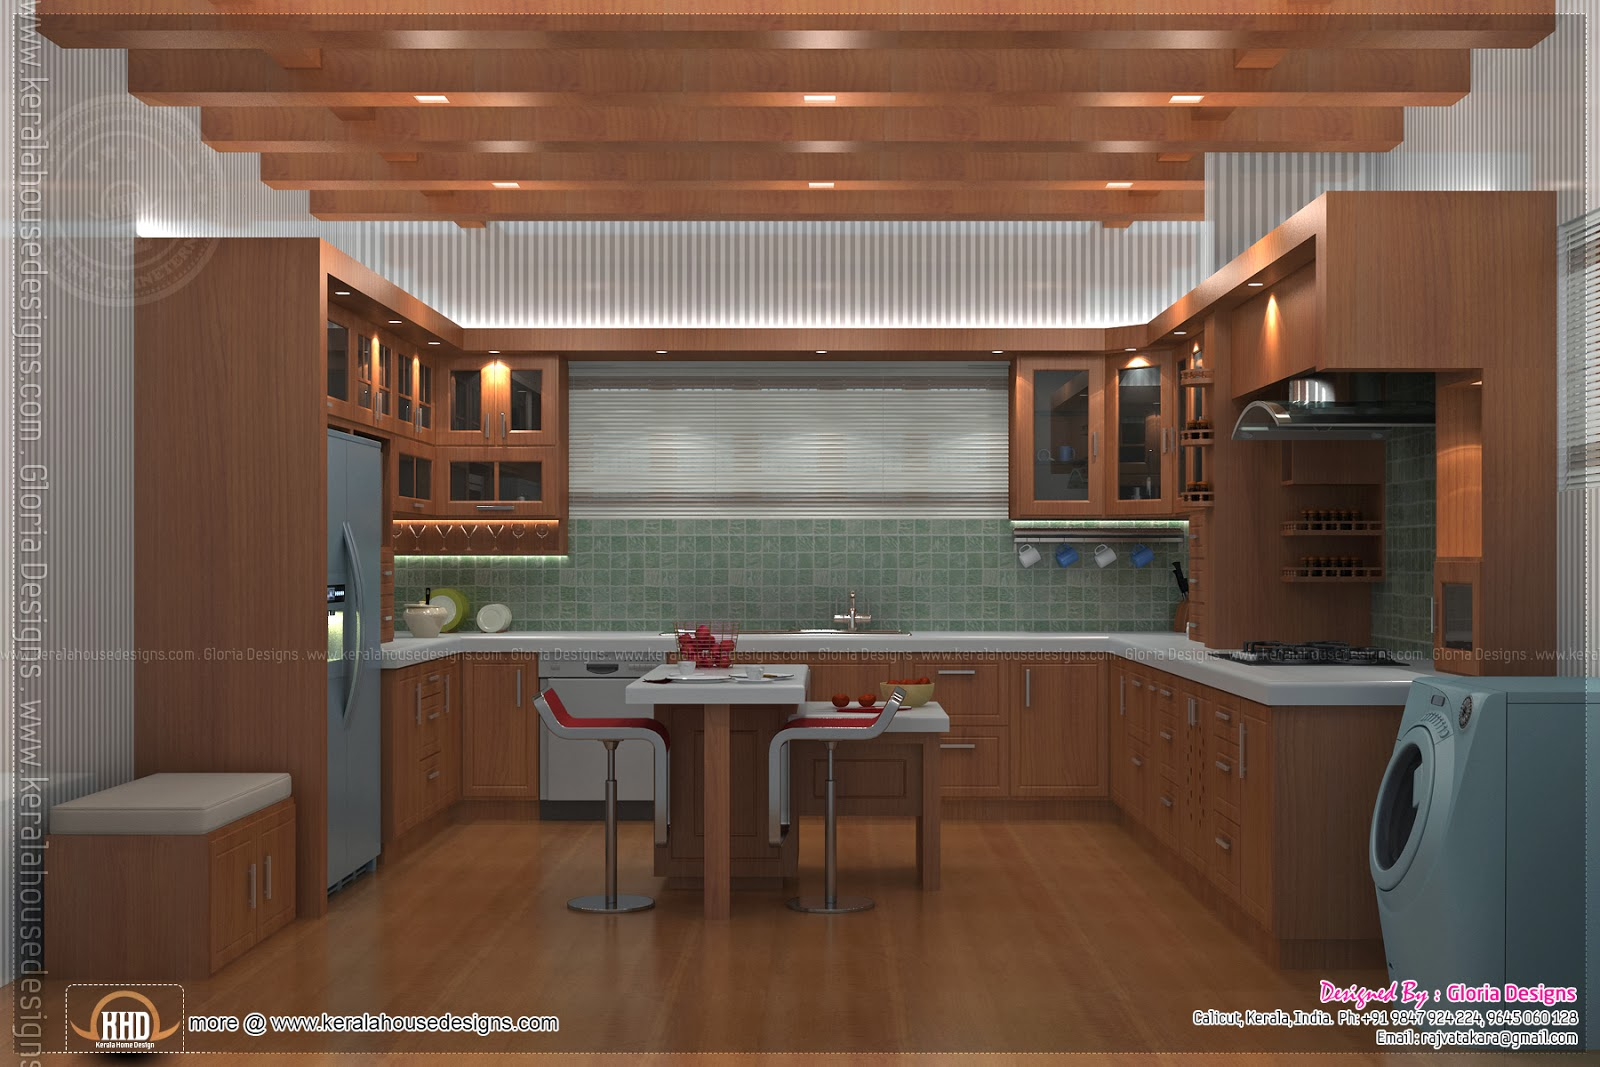 Home interior designs by gloria designs calicut home for Interior designs in kerala